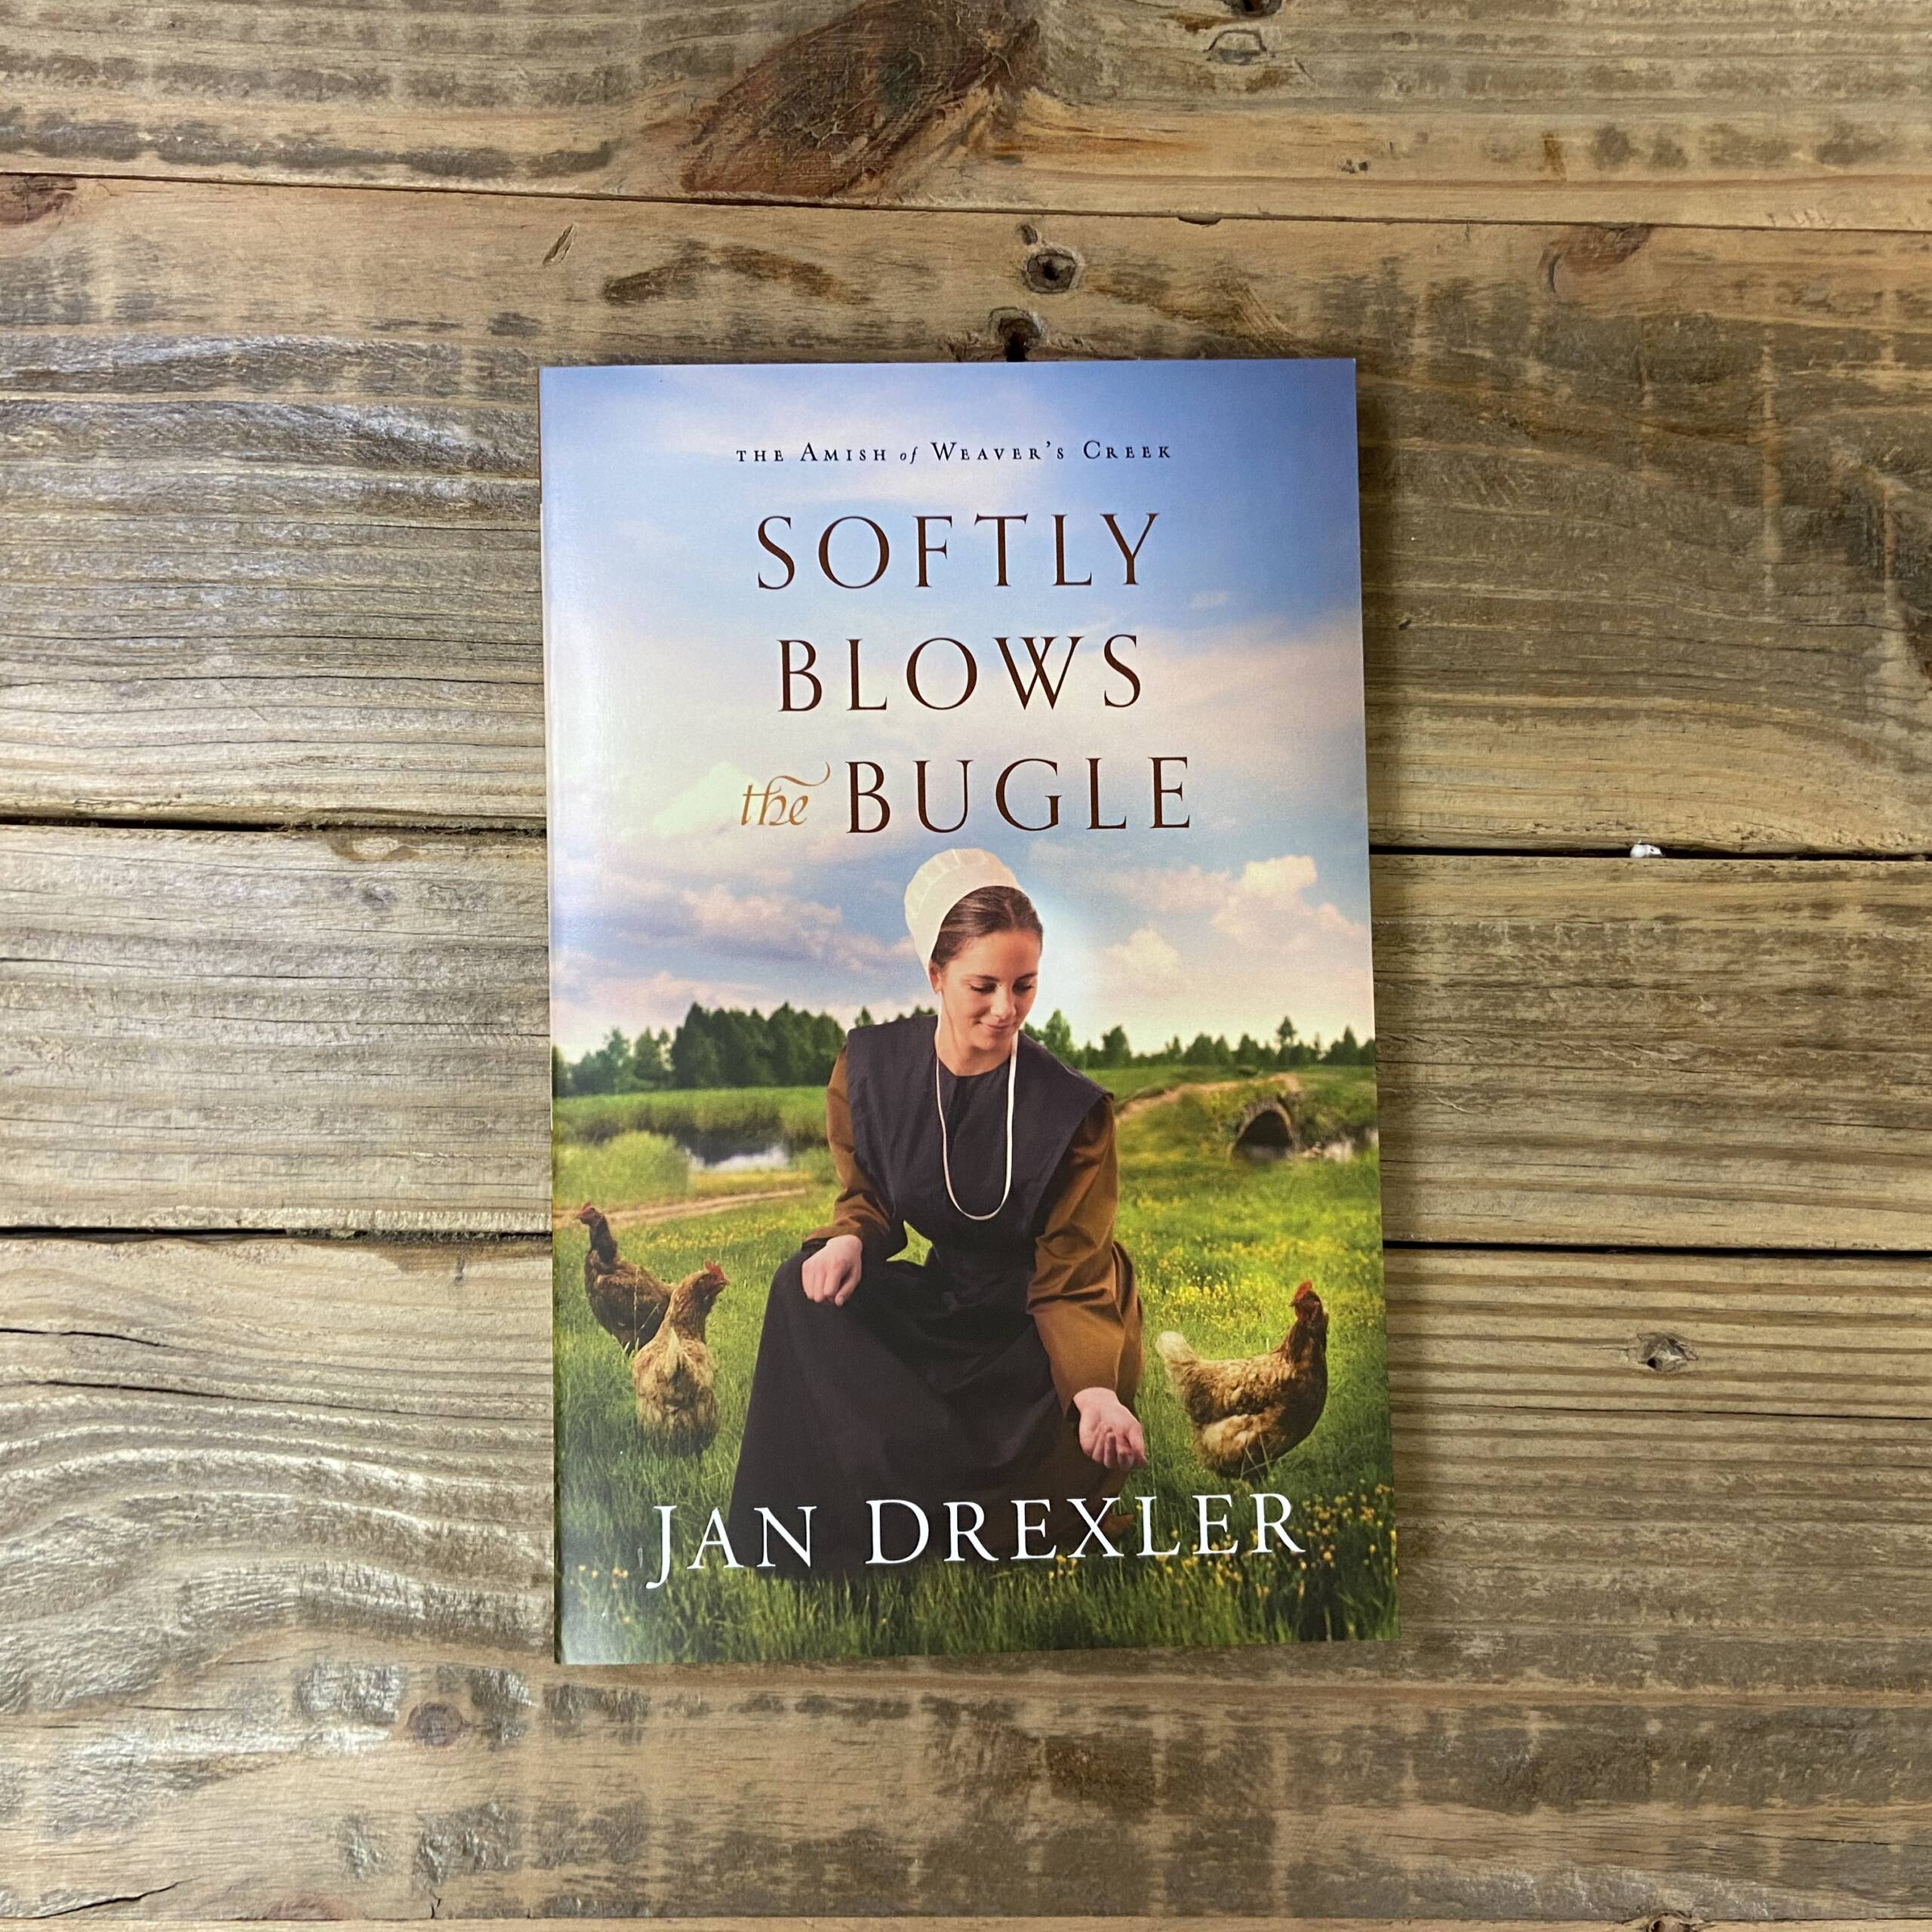 Softly Blows the Bugle ( Amish of Weaver's Creek #3 )